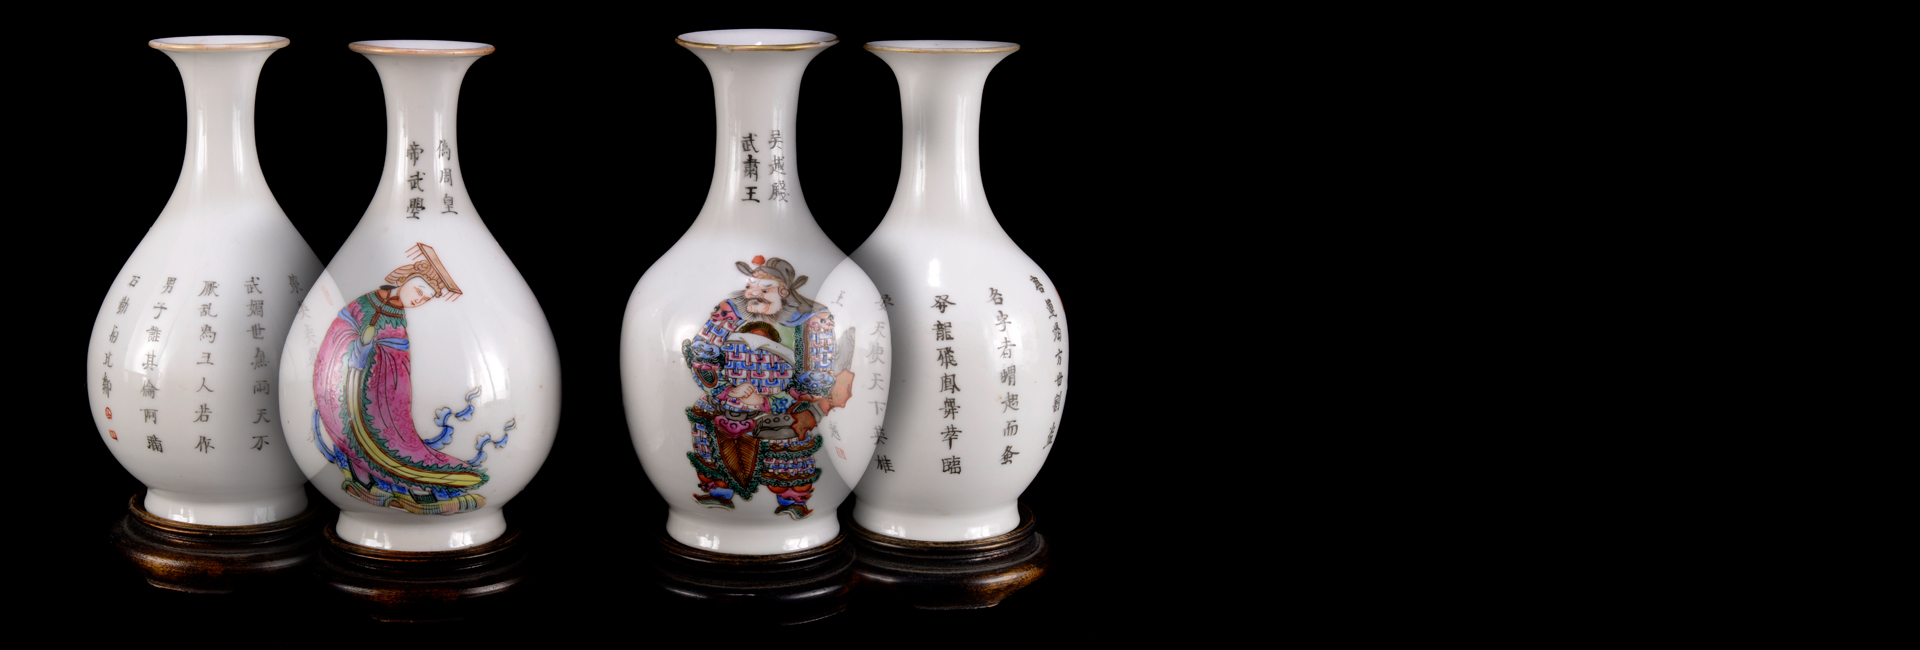 China, Republic of China period (1920-1930) [A PAIR OF VASES]